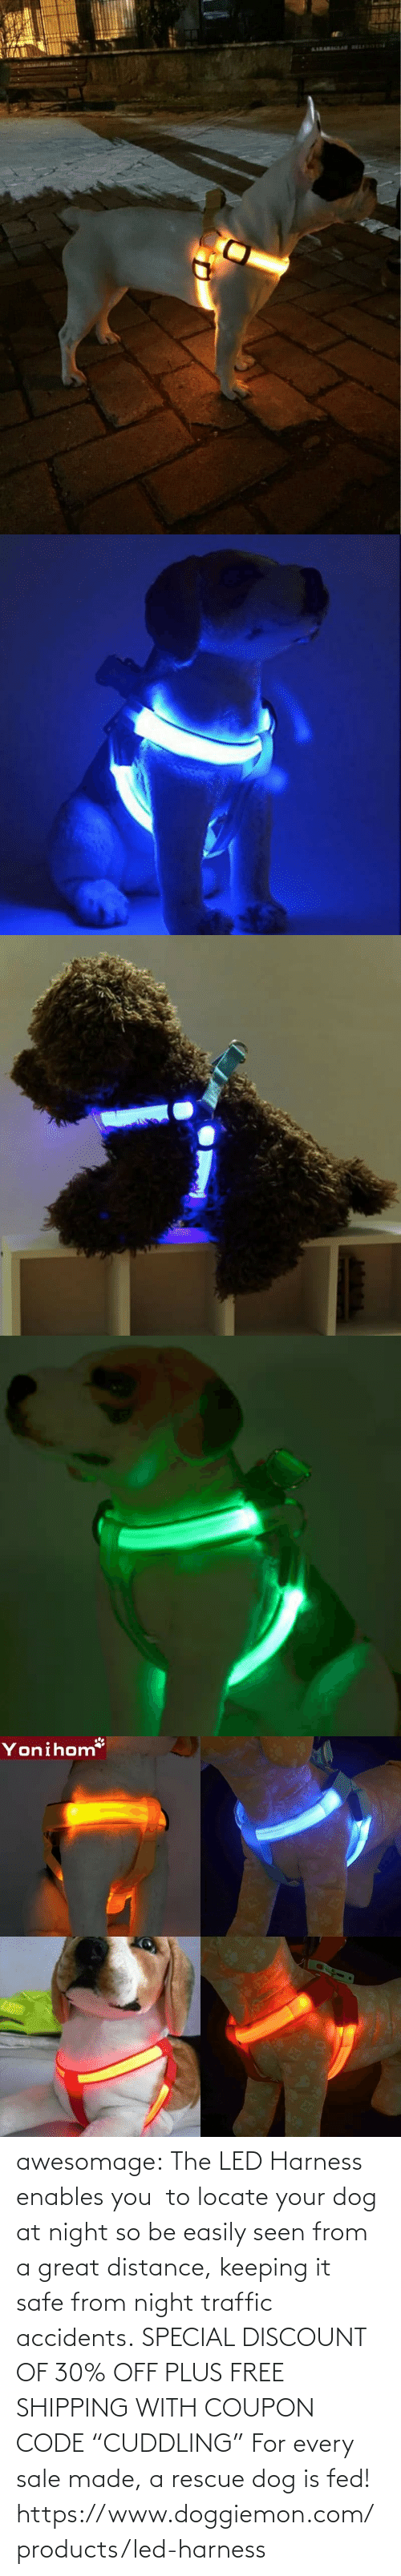 "coupon: awesomage:   The LED Harness enables you  to locate your dog at night so be easily seen from a great distance, keeping it safe from night traffic accidents. SPECIAL DISCOUNT OF 30% OFF PLUS FREE SHIPPING WITH COUPON CODE ""CUDDLING"" For every sale made, a rescue dog is fed!   https://www.doggiemon.com/products/led-harness"